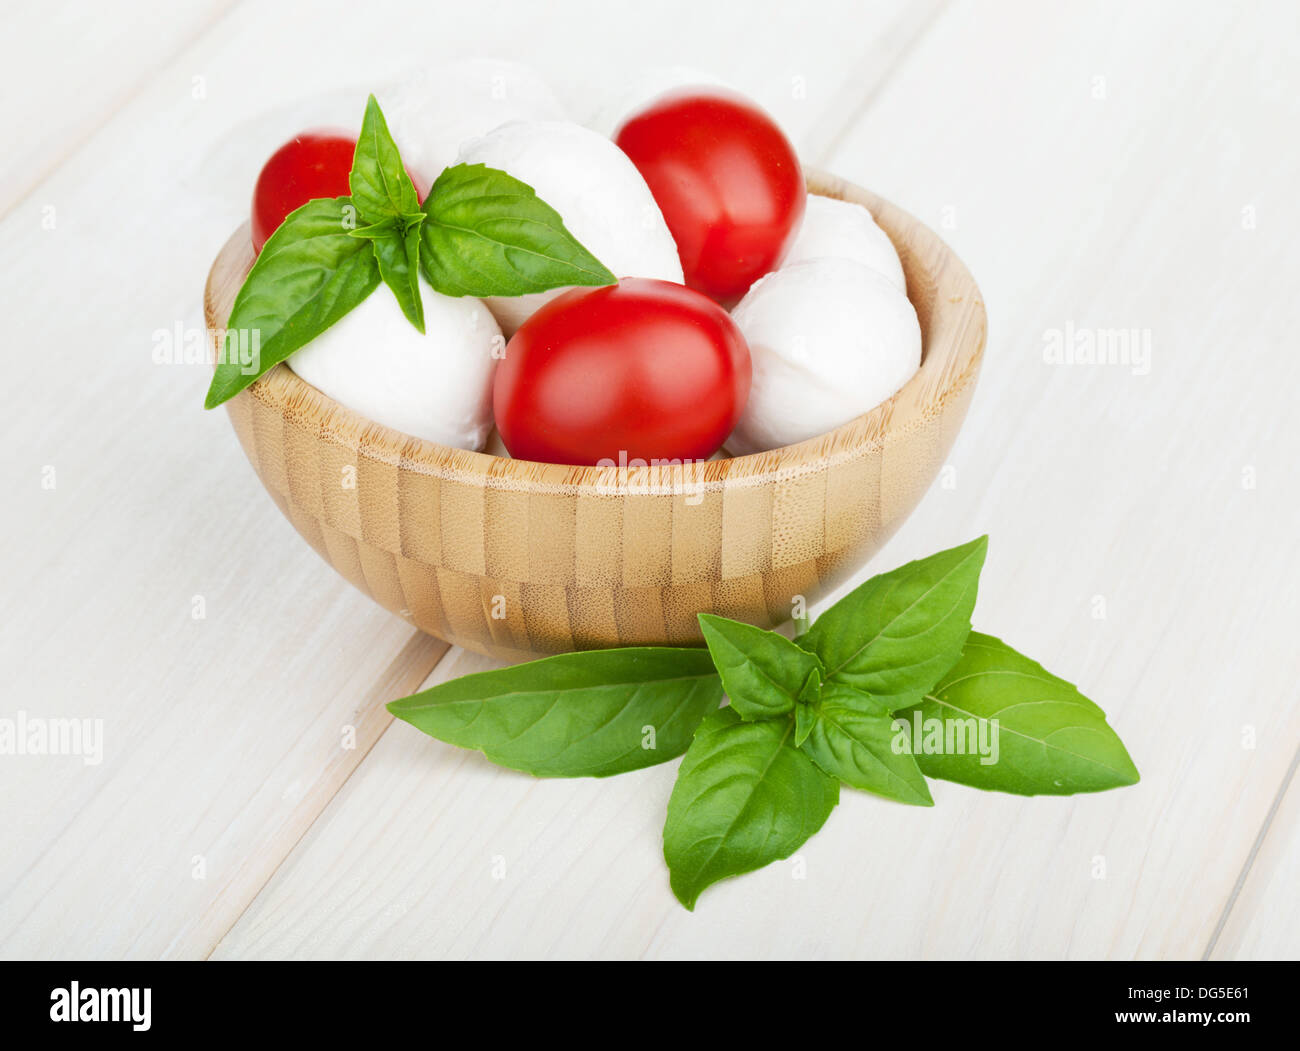 Mozzarella cheese with cherry tomatoes and basil on white wood table - Stock Image